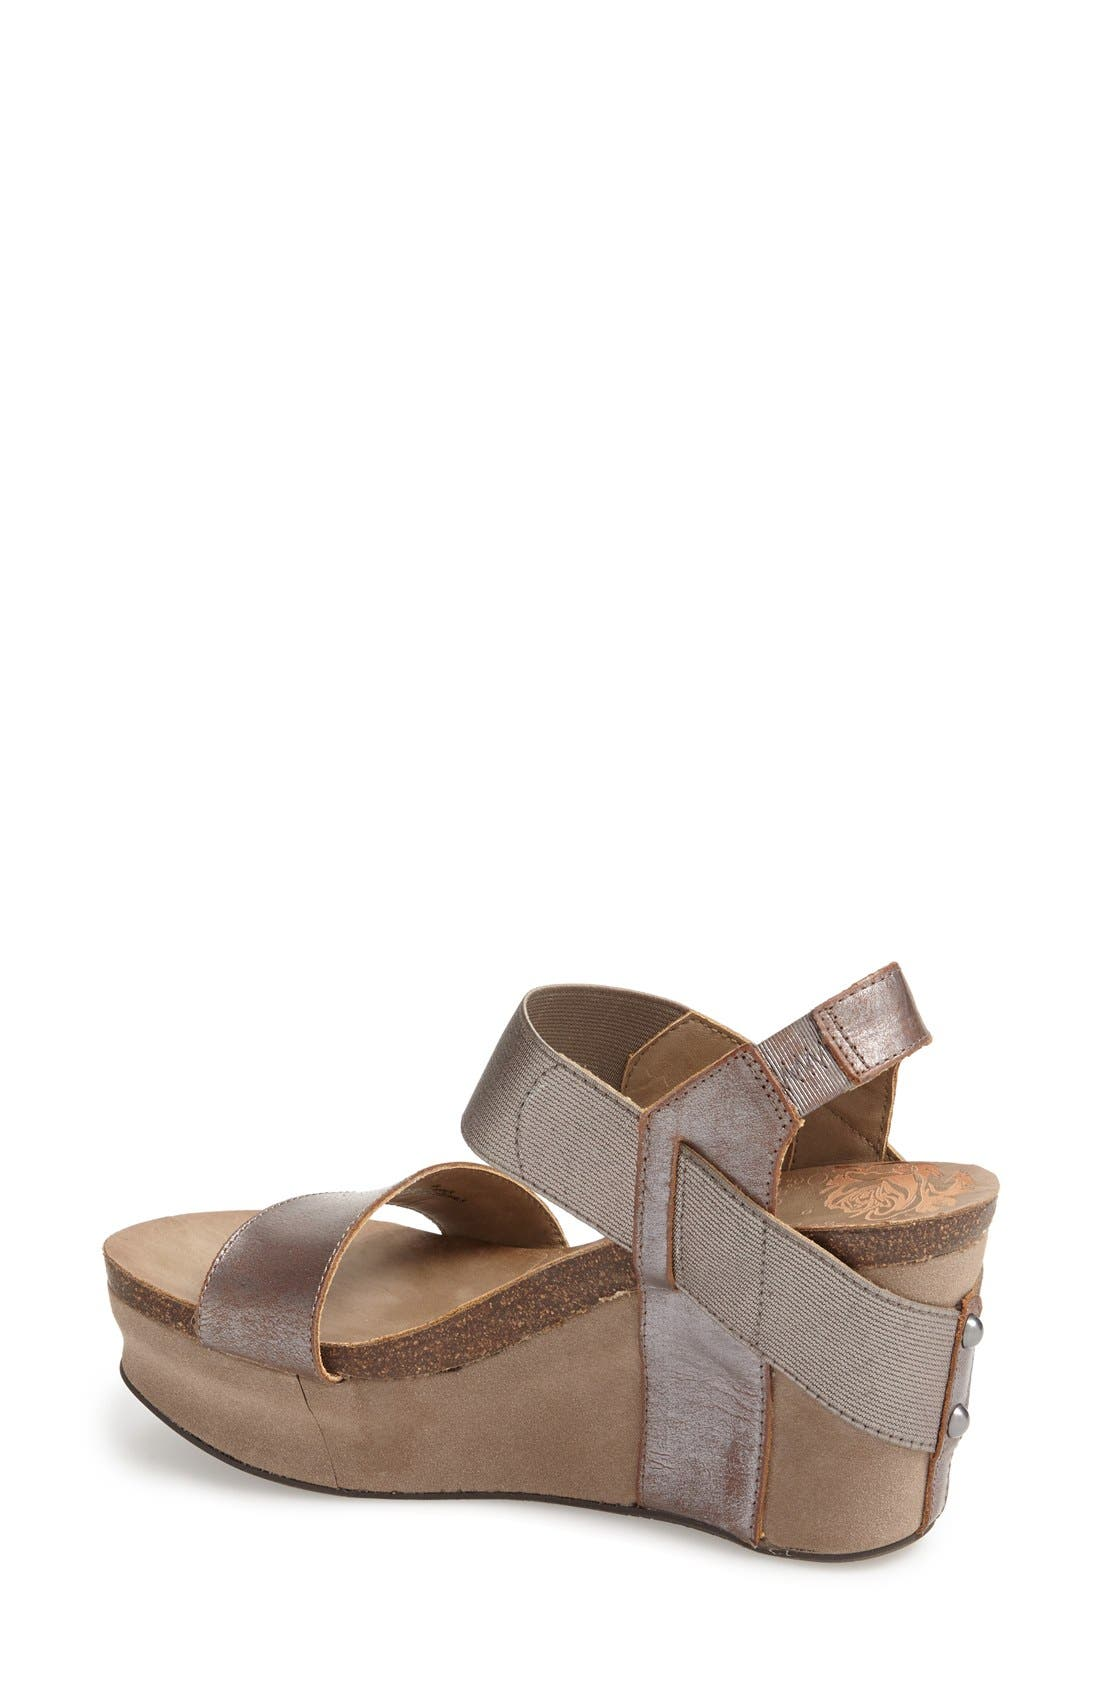 'Bushnell' Wedge Sandal,                             Alternate thumbnail 18, color,